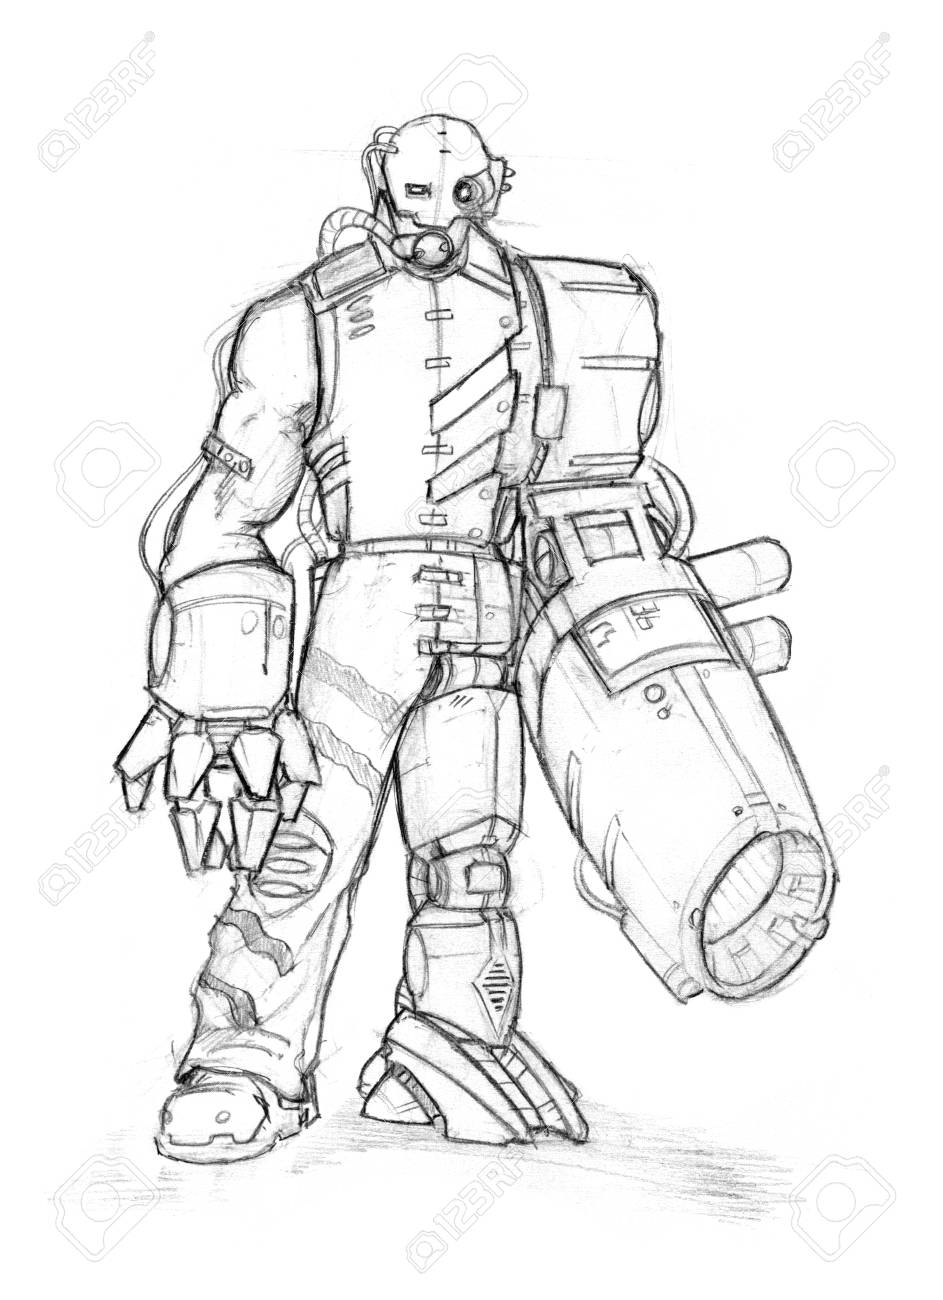 Black and white rough pencil sketch of dangerous cyborg soldier